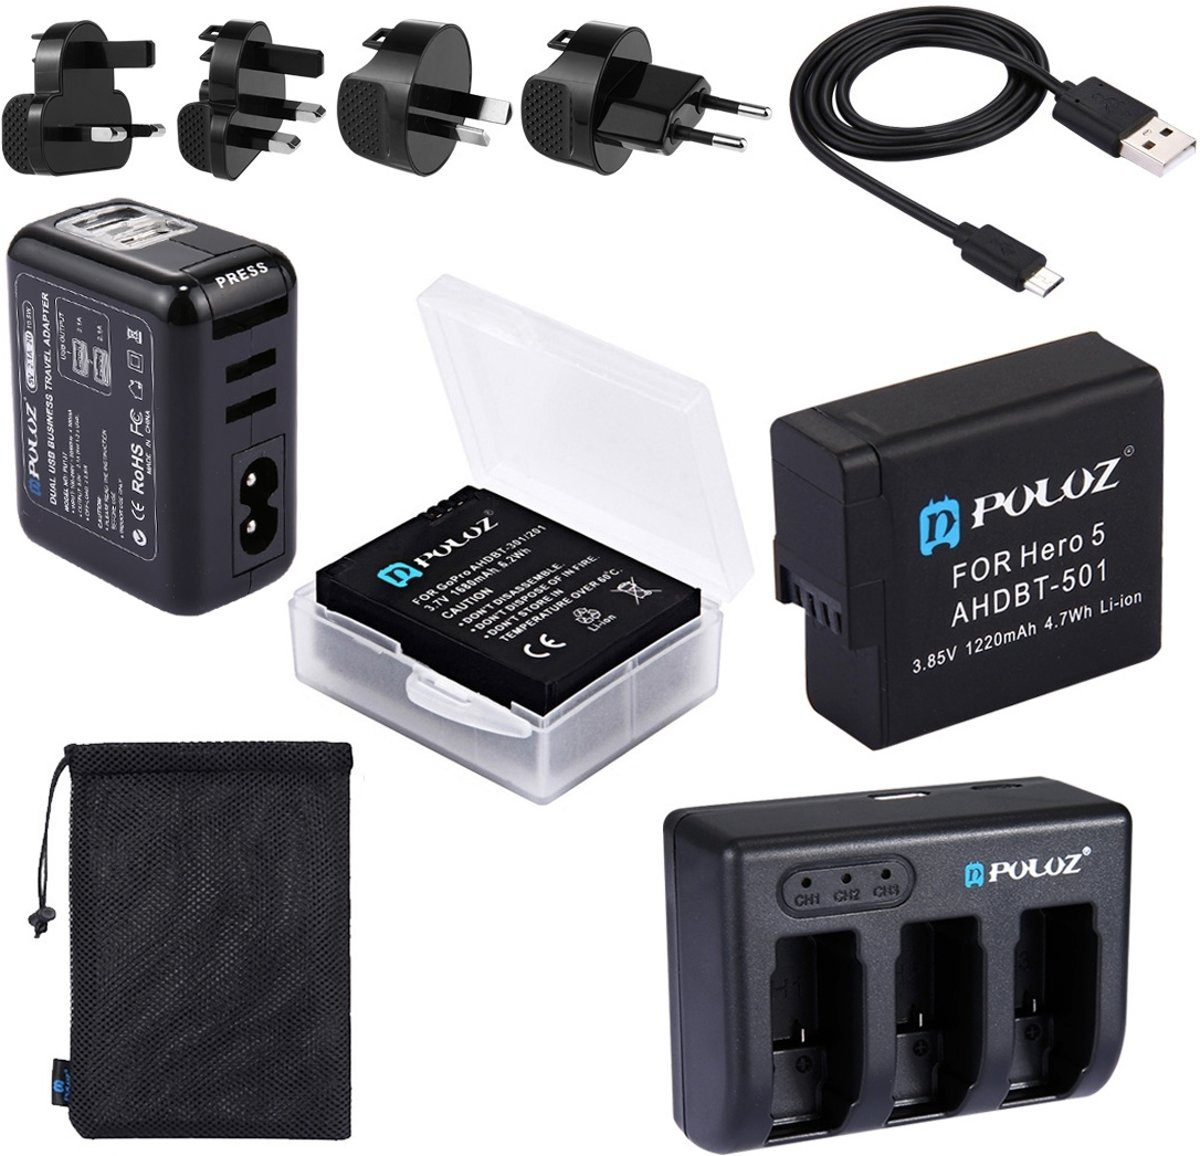 PULUZ 5 in 1 AHDBT-501 3.85V 1220mAh Battery + AHDBT-501 3-channel Battery Charger +  Mesh Storage Bag + Battery Storage Box + 2-Port USB 5V (2.1A + 2.1A) Wall Charger Kit voor GoPro HERO5 kopen